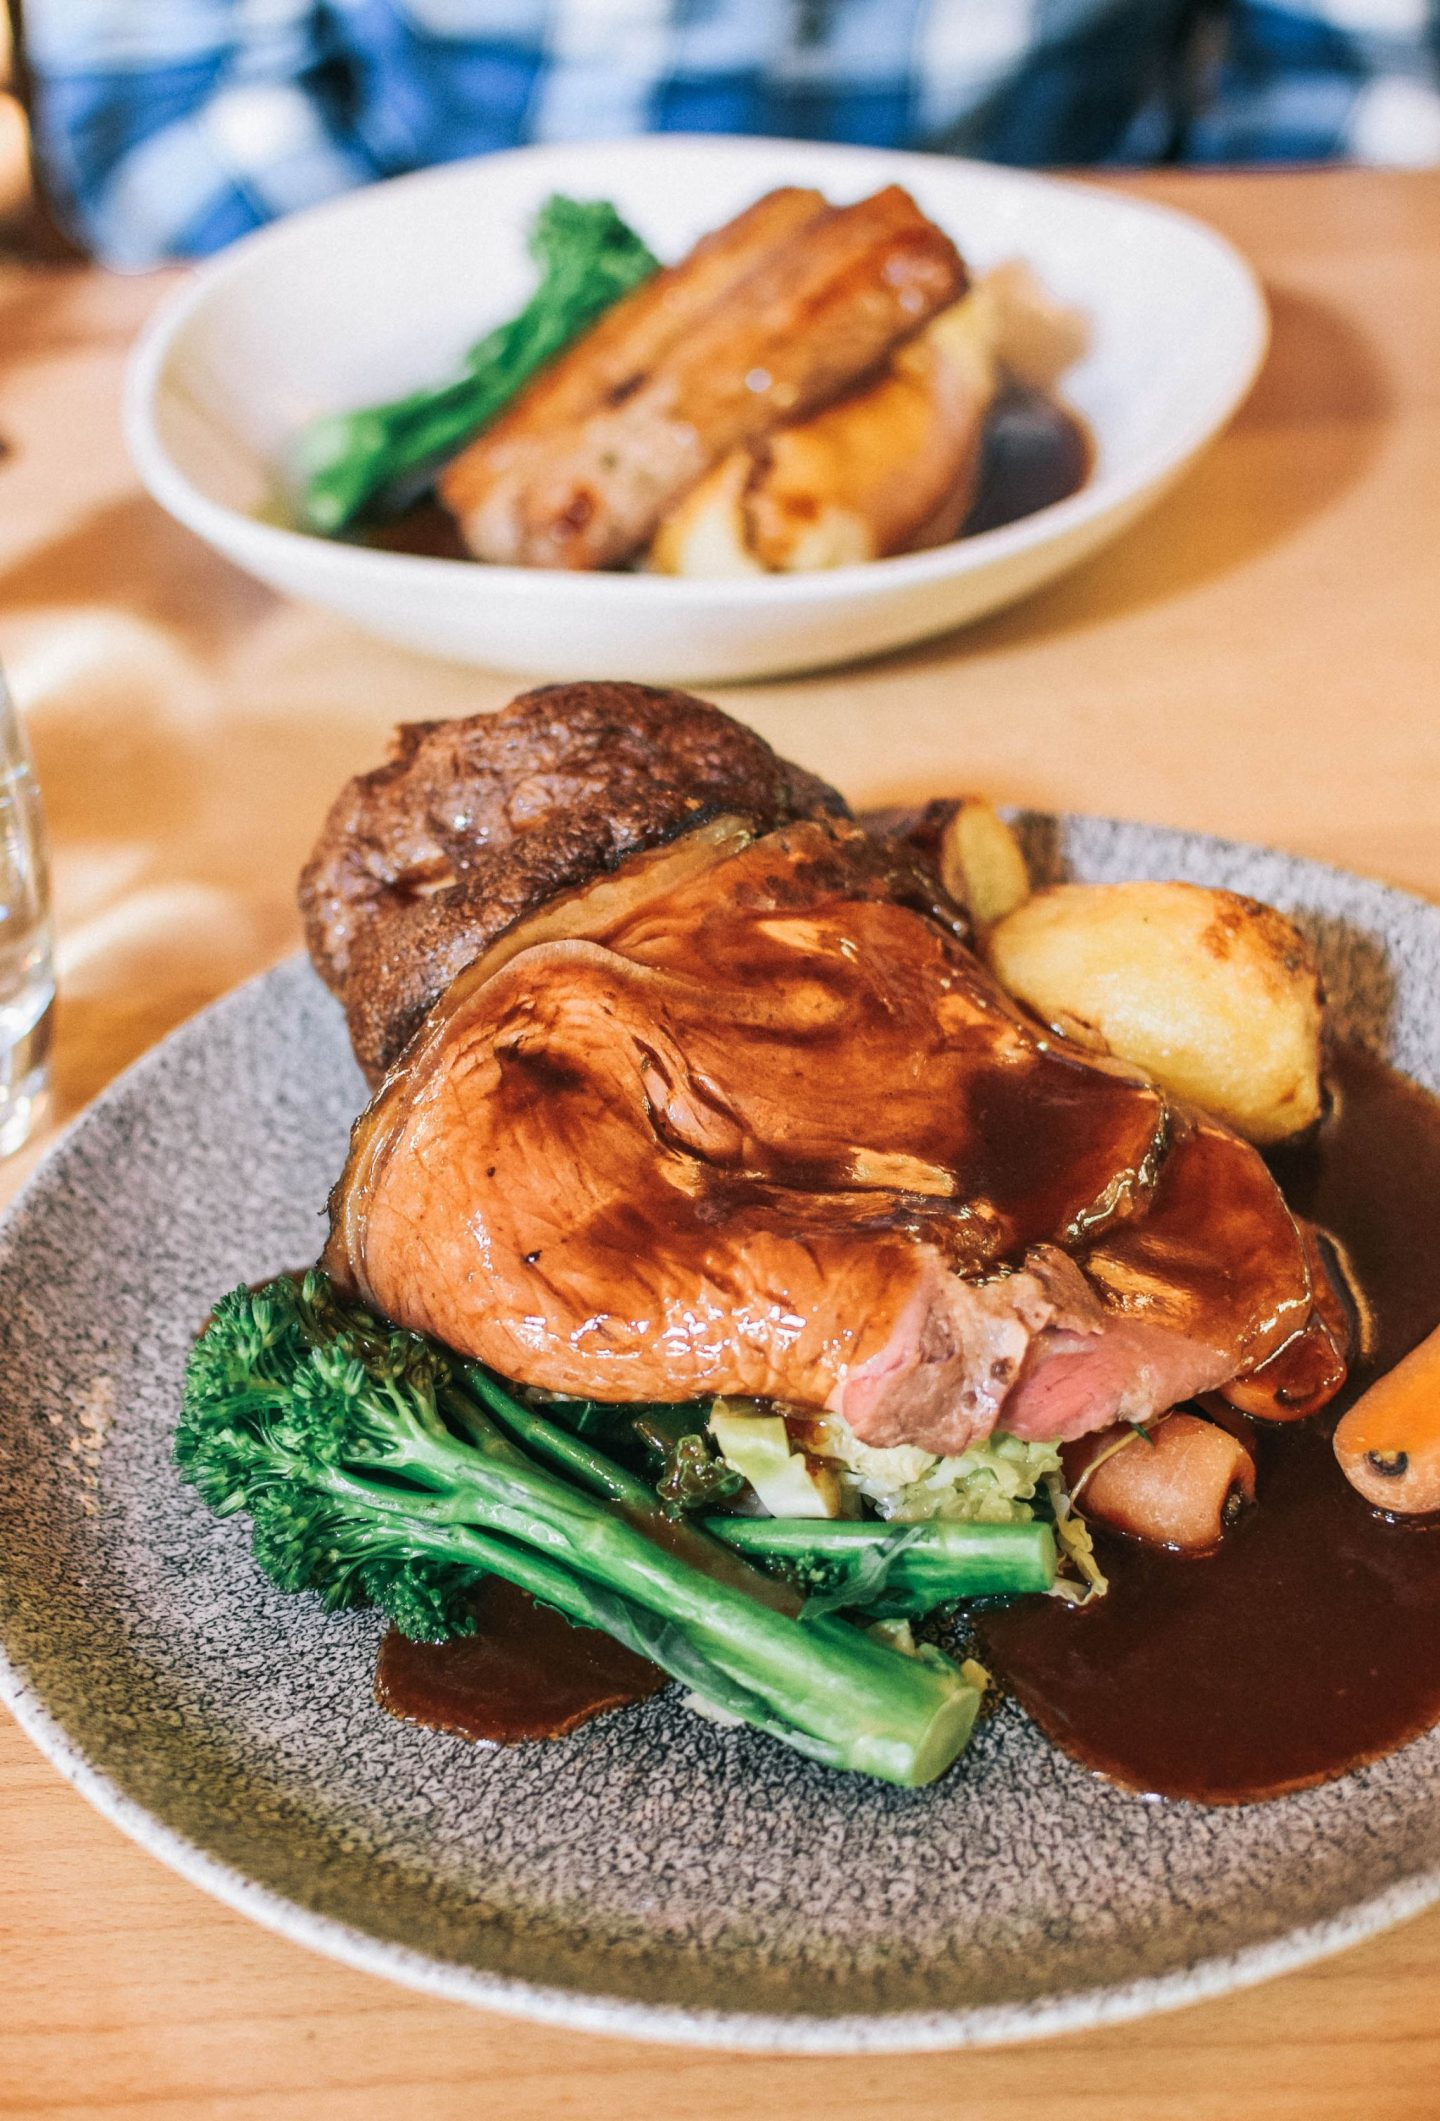 Sunday lunch at the Treehouse Restaurant Alnwick